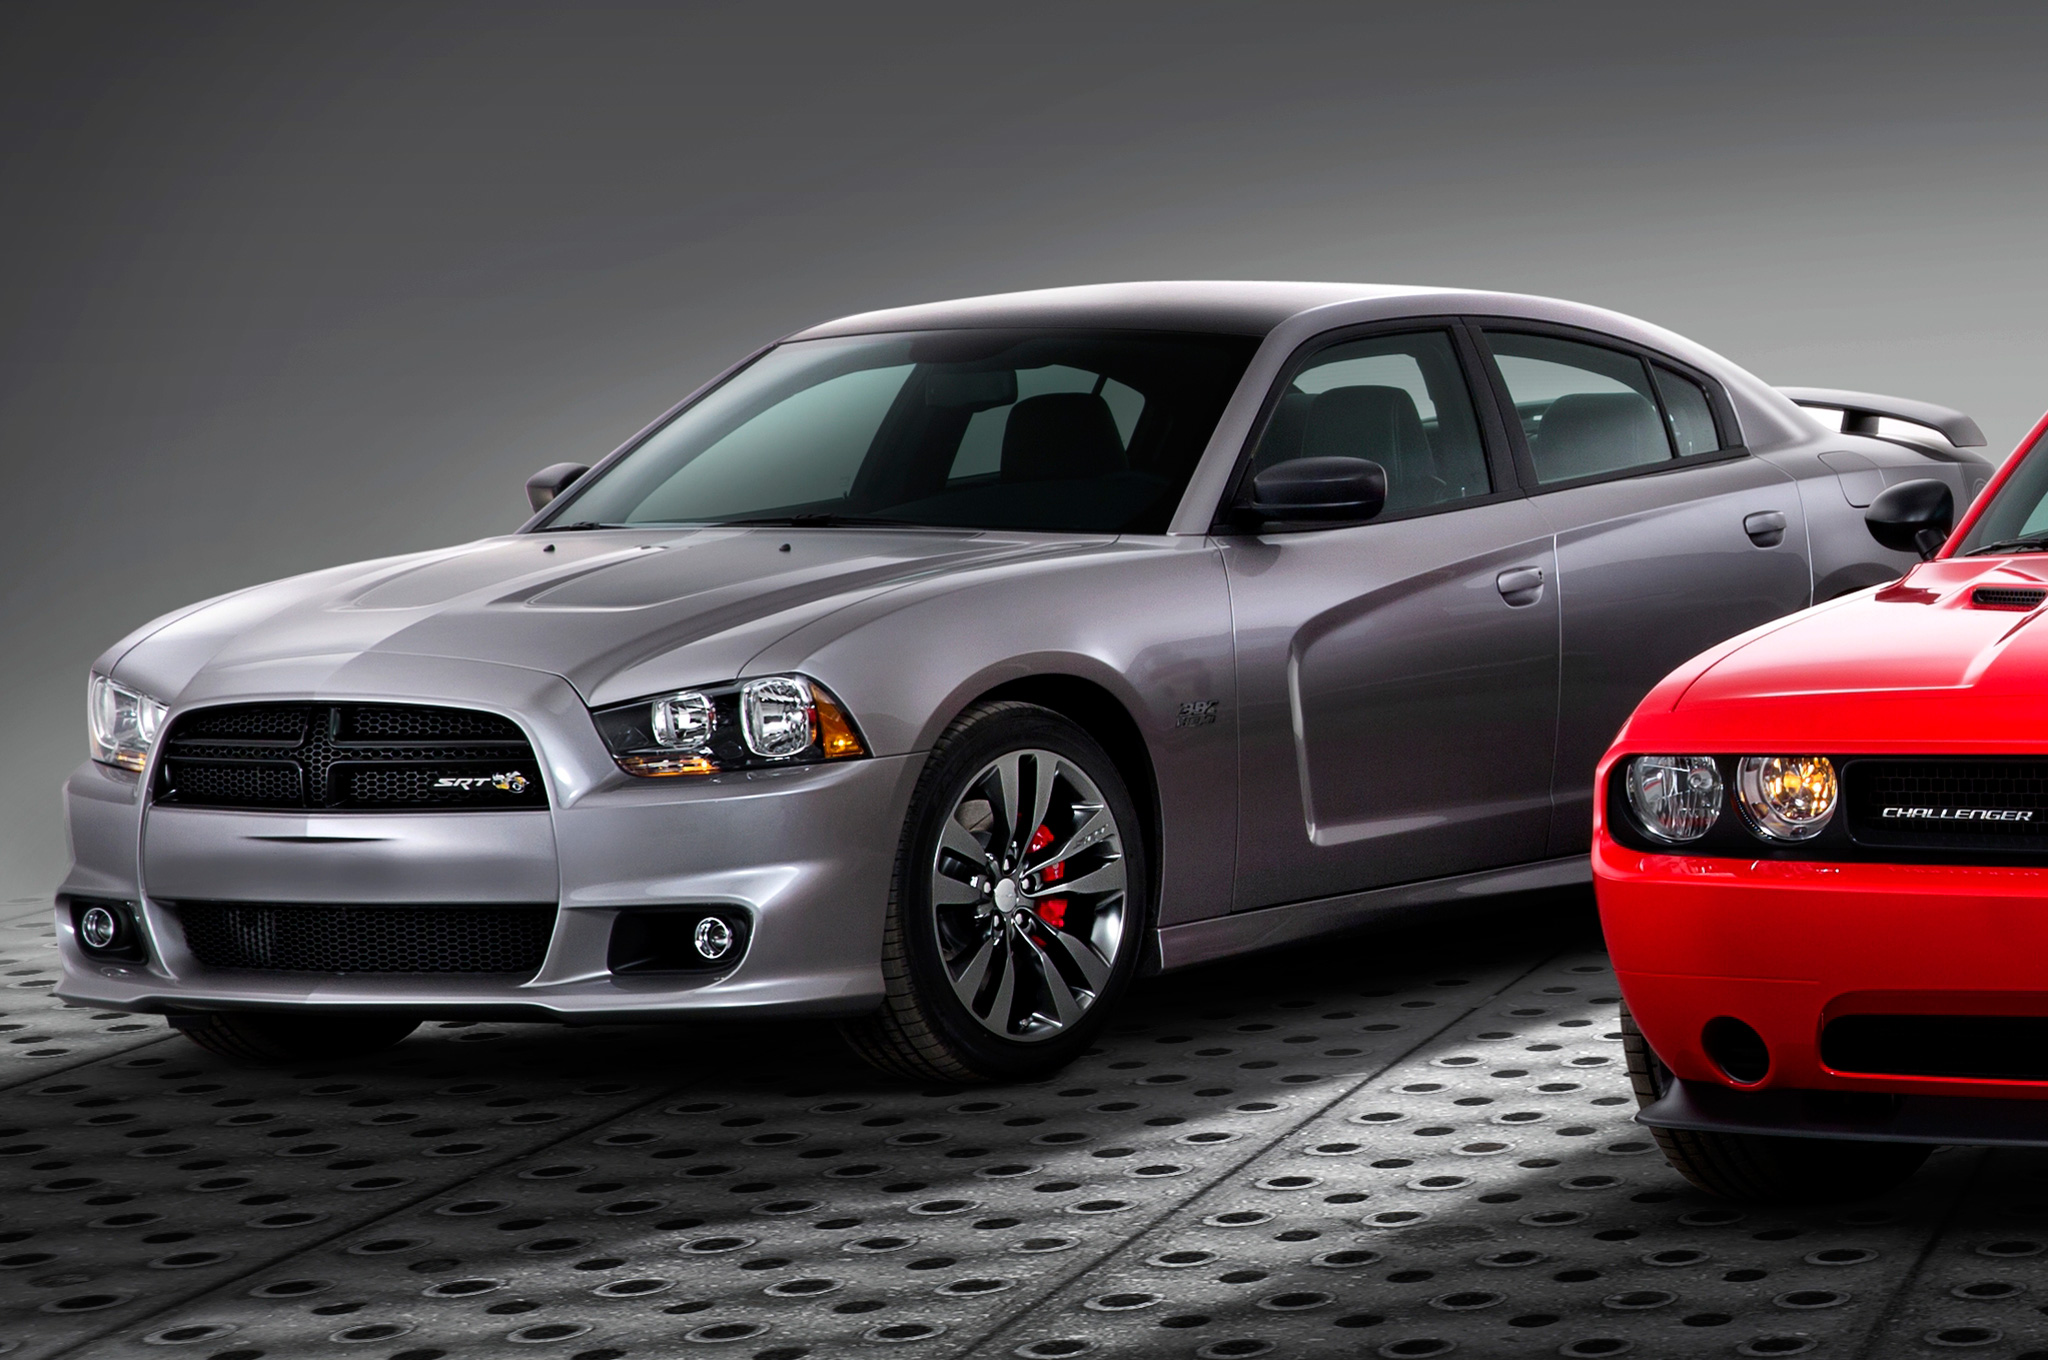 2014 Dodge Charger Photos, Informations, Articles - BestCarMag.com